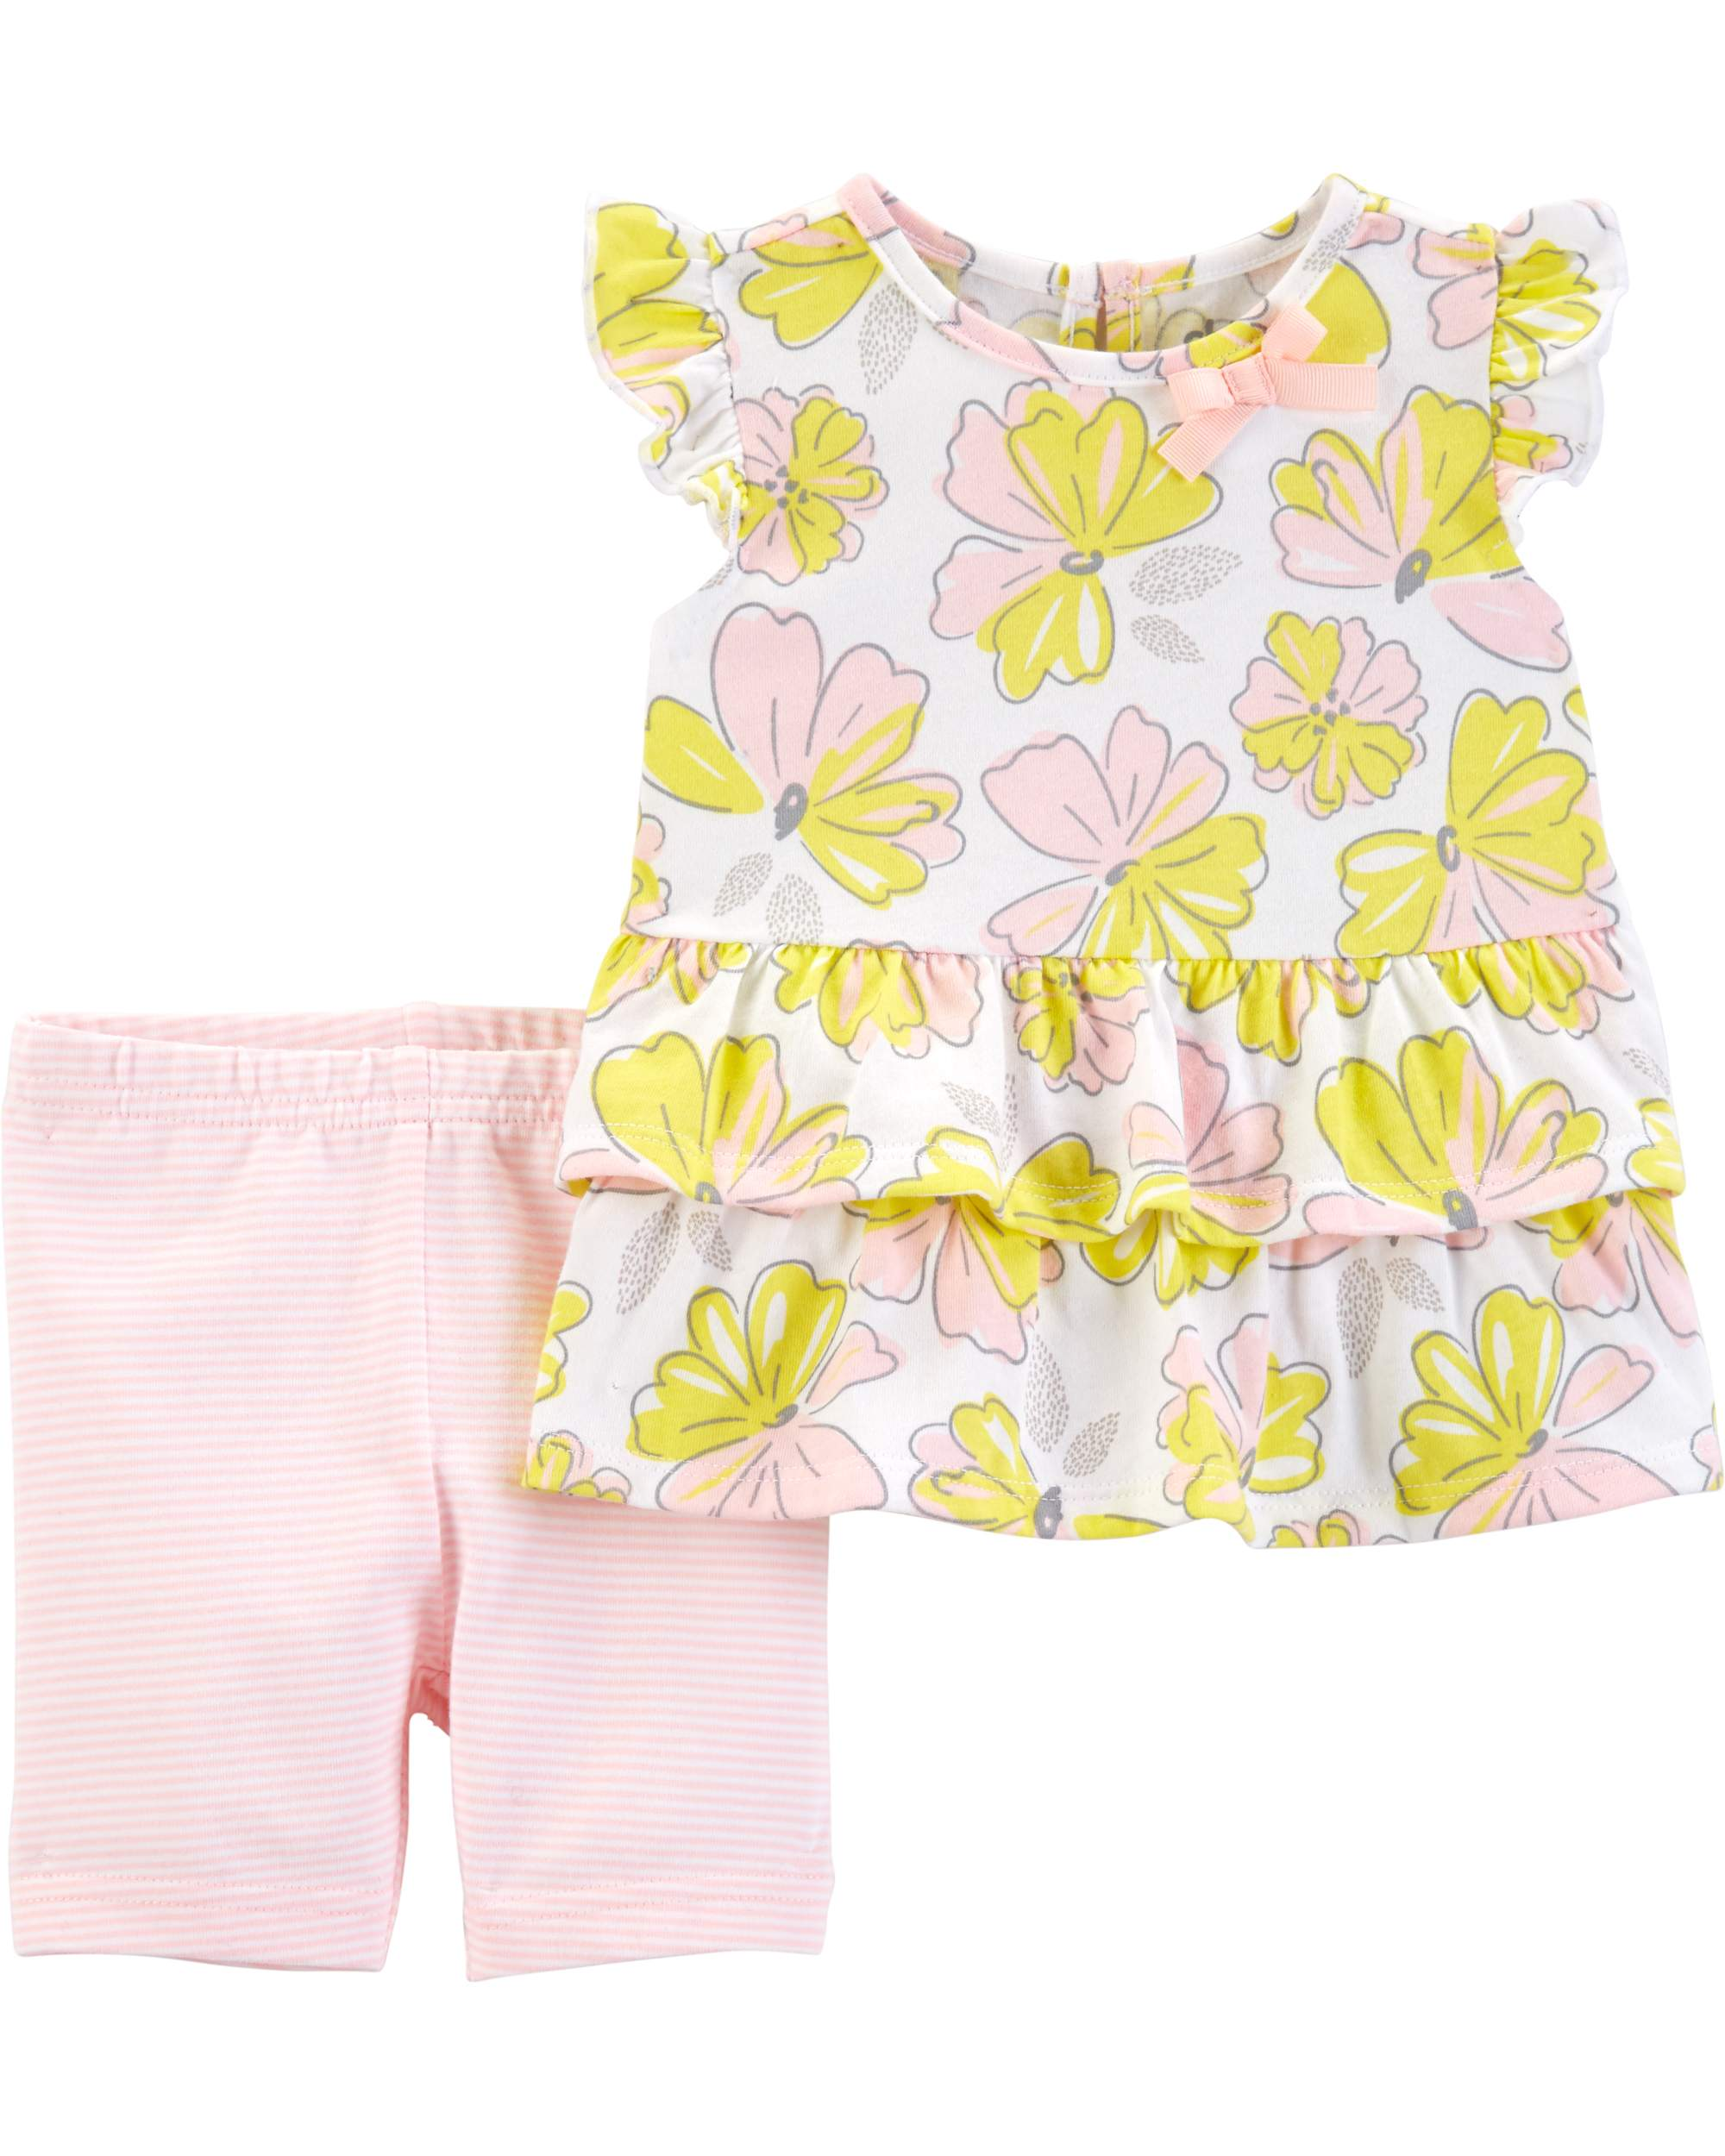 Ruffle Sleeve Top and Shorts, 2pc Outfit Set (Toddler Girls)